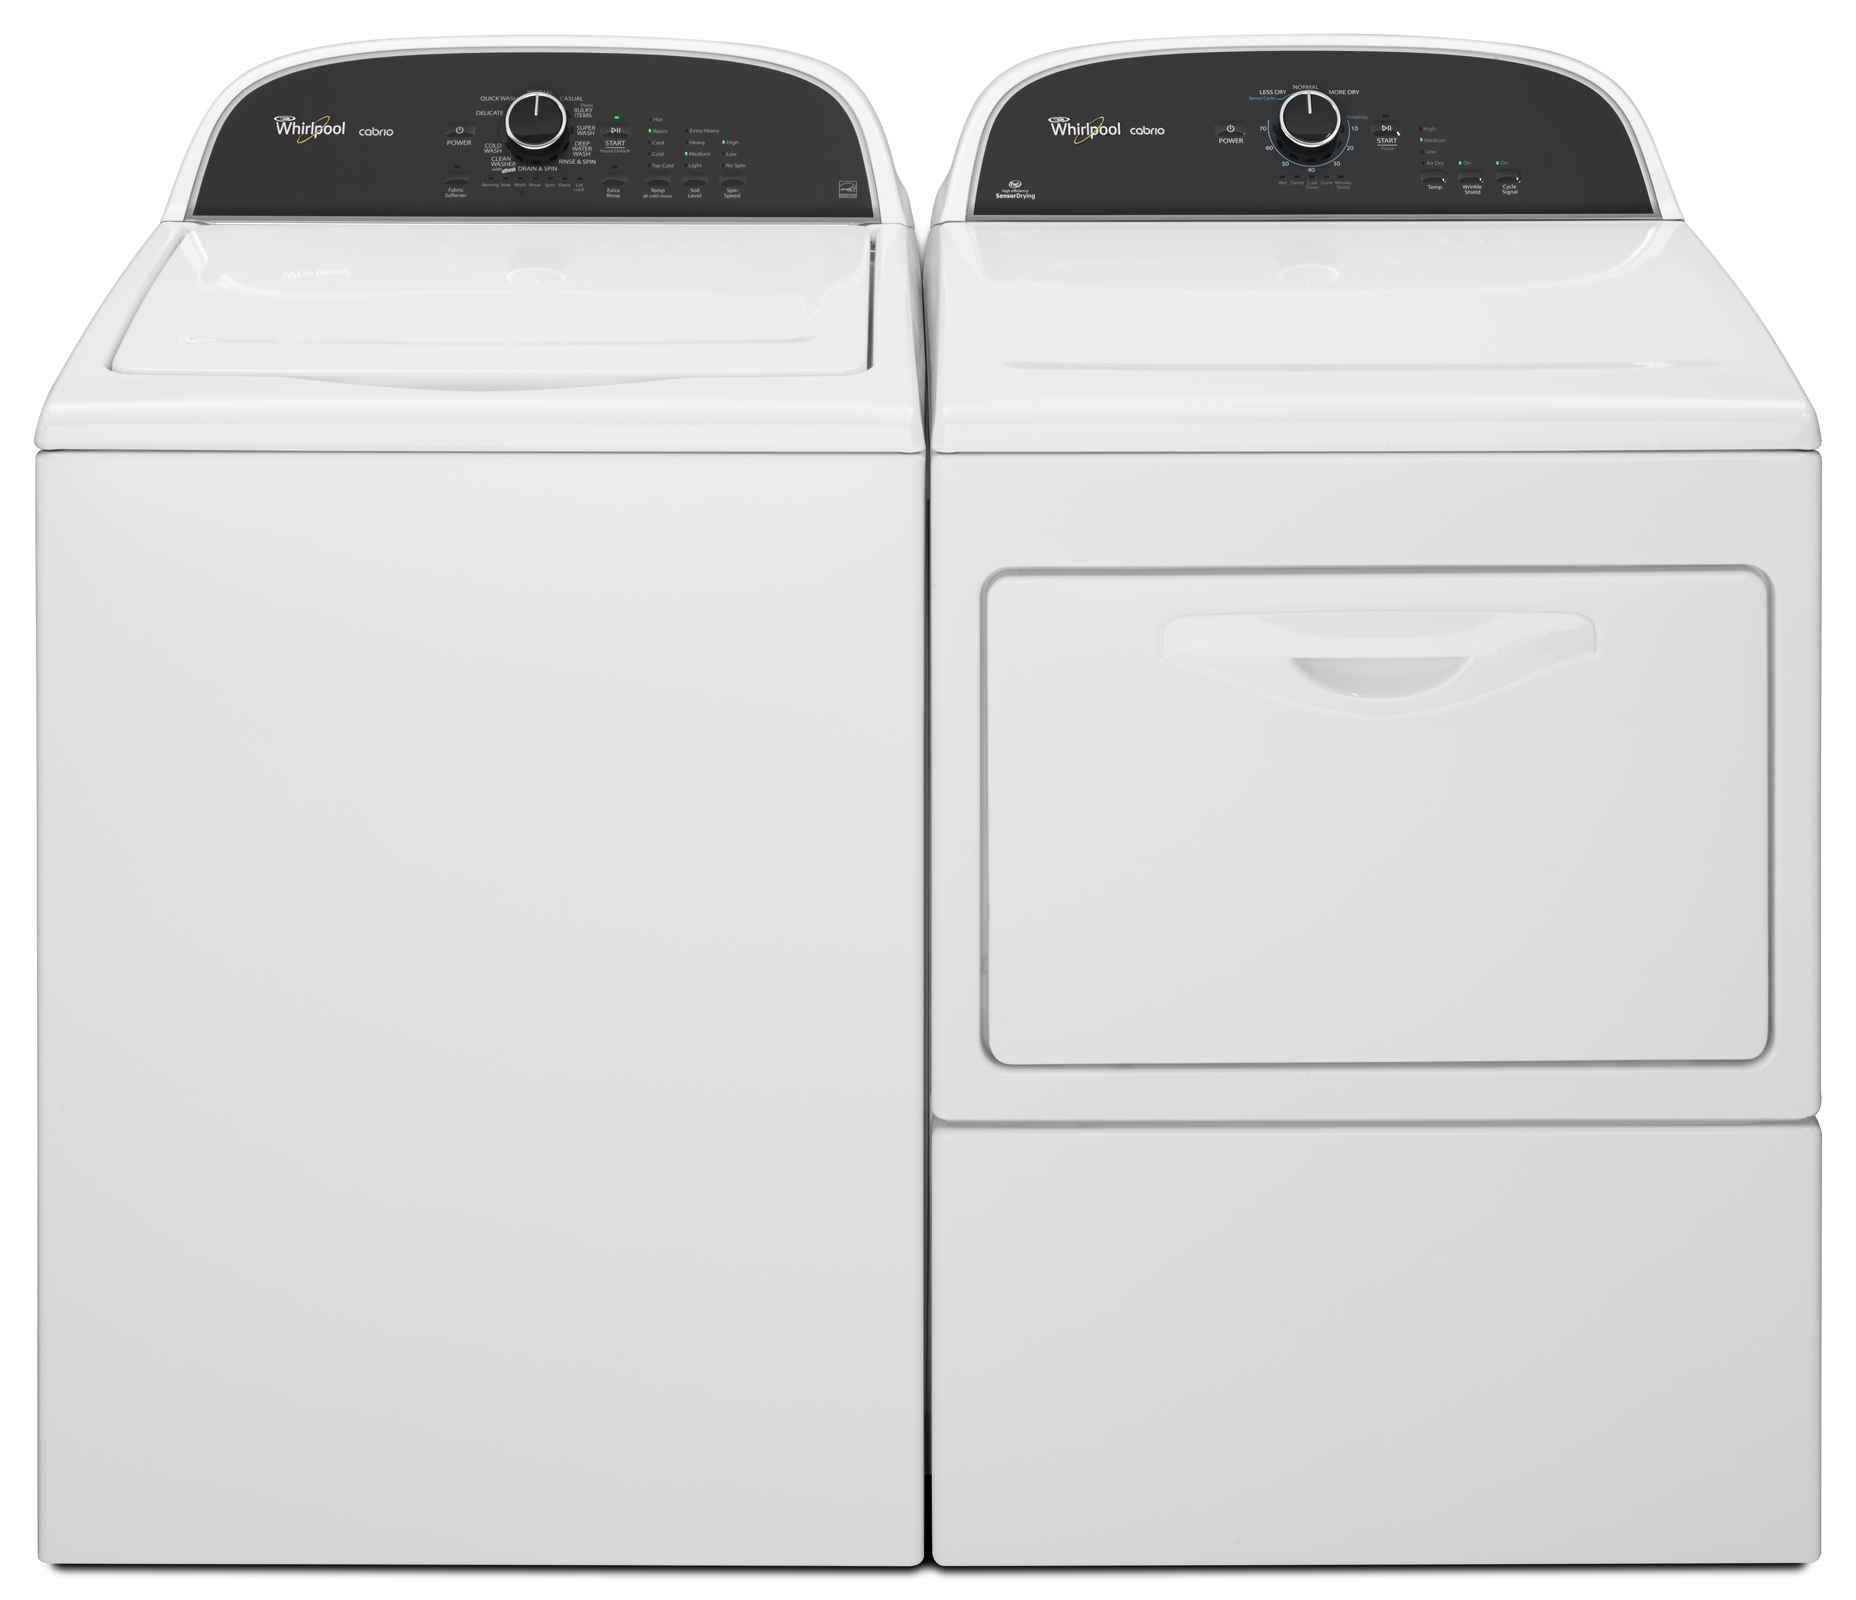 Whirlpool 7.4 cu. ft. Cabrio® Gas Dryer w/ Cycle Status Lights - White